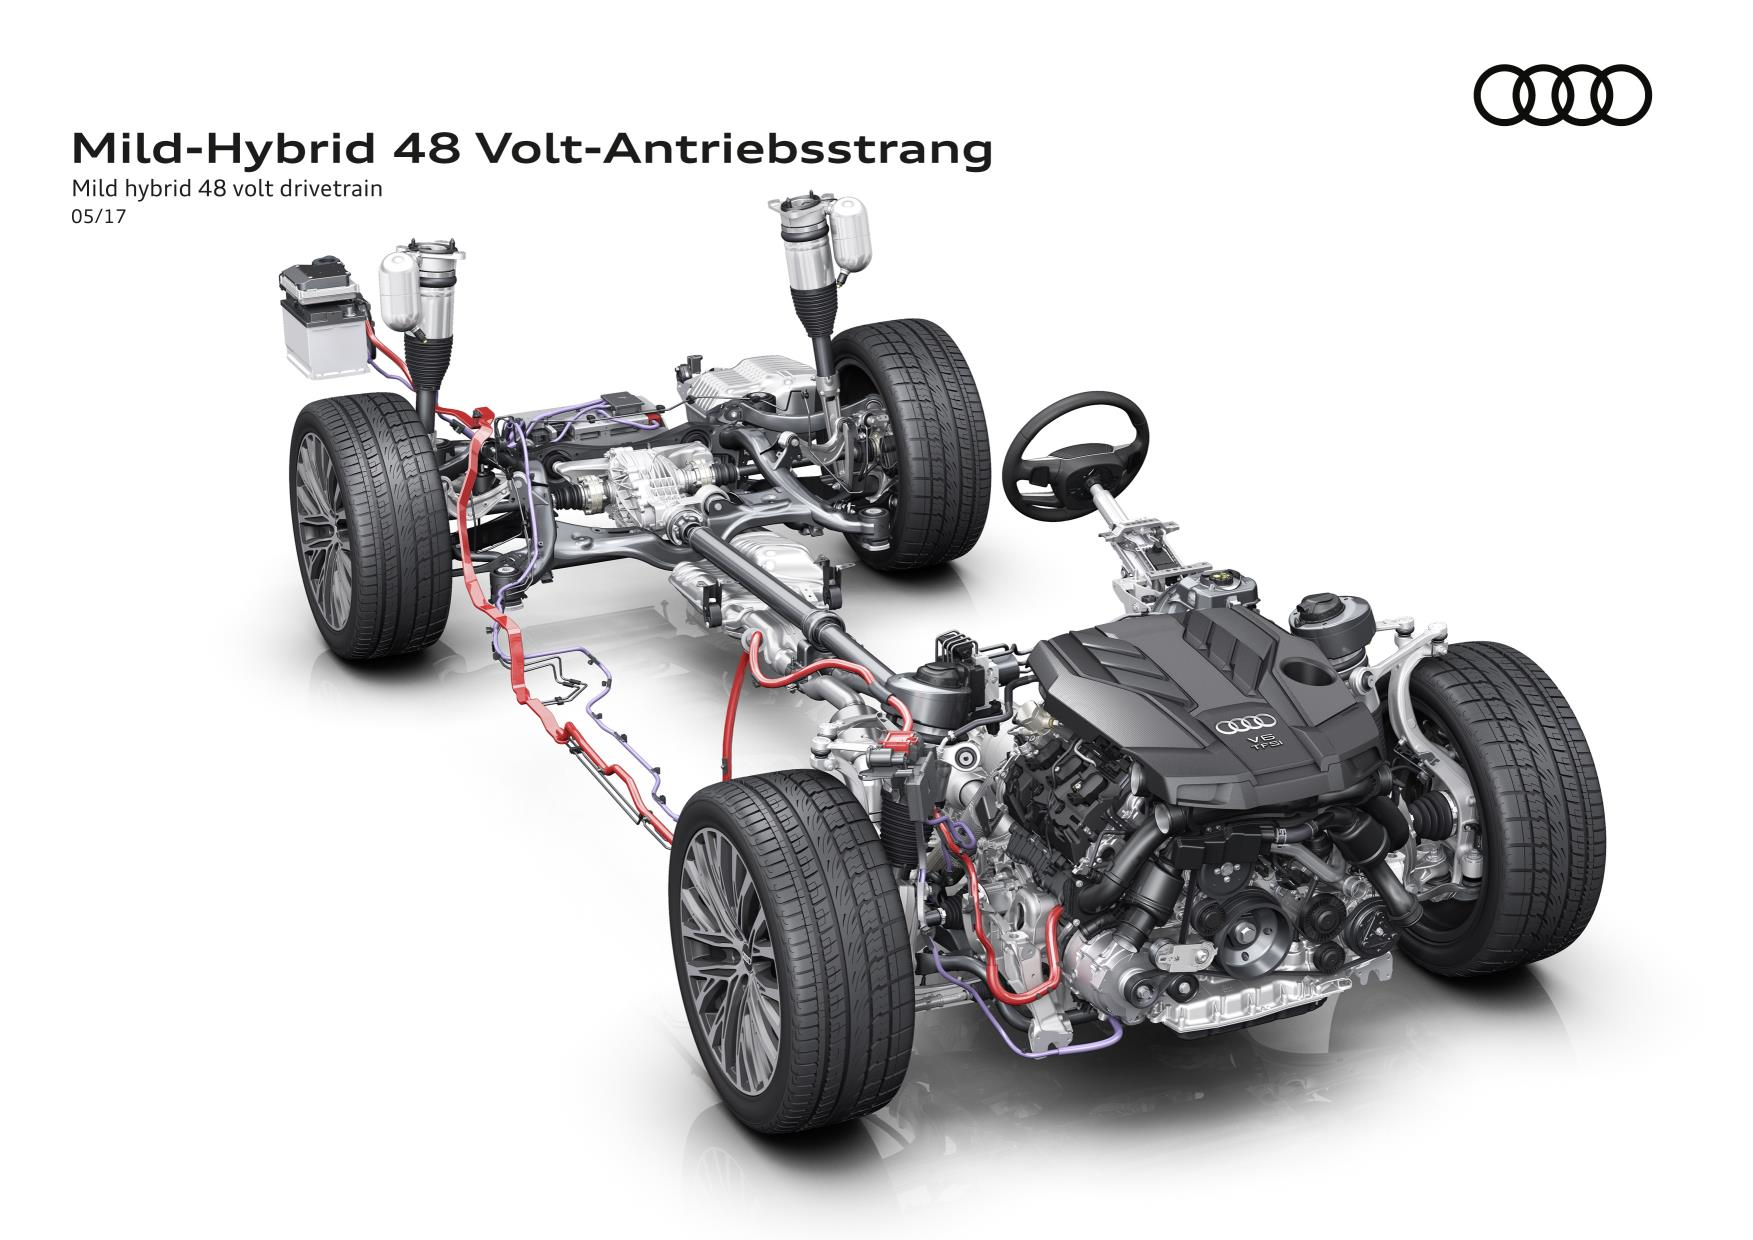 Next Gen Audi A8 to Feature Electrified Powertrain as Standard